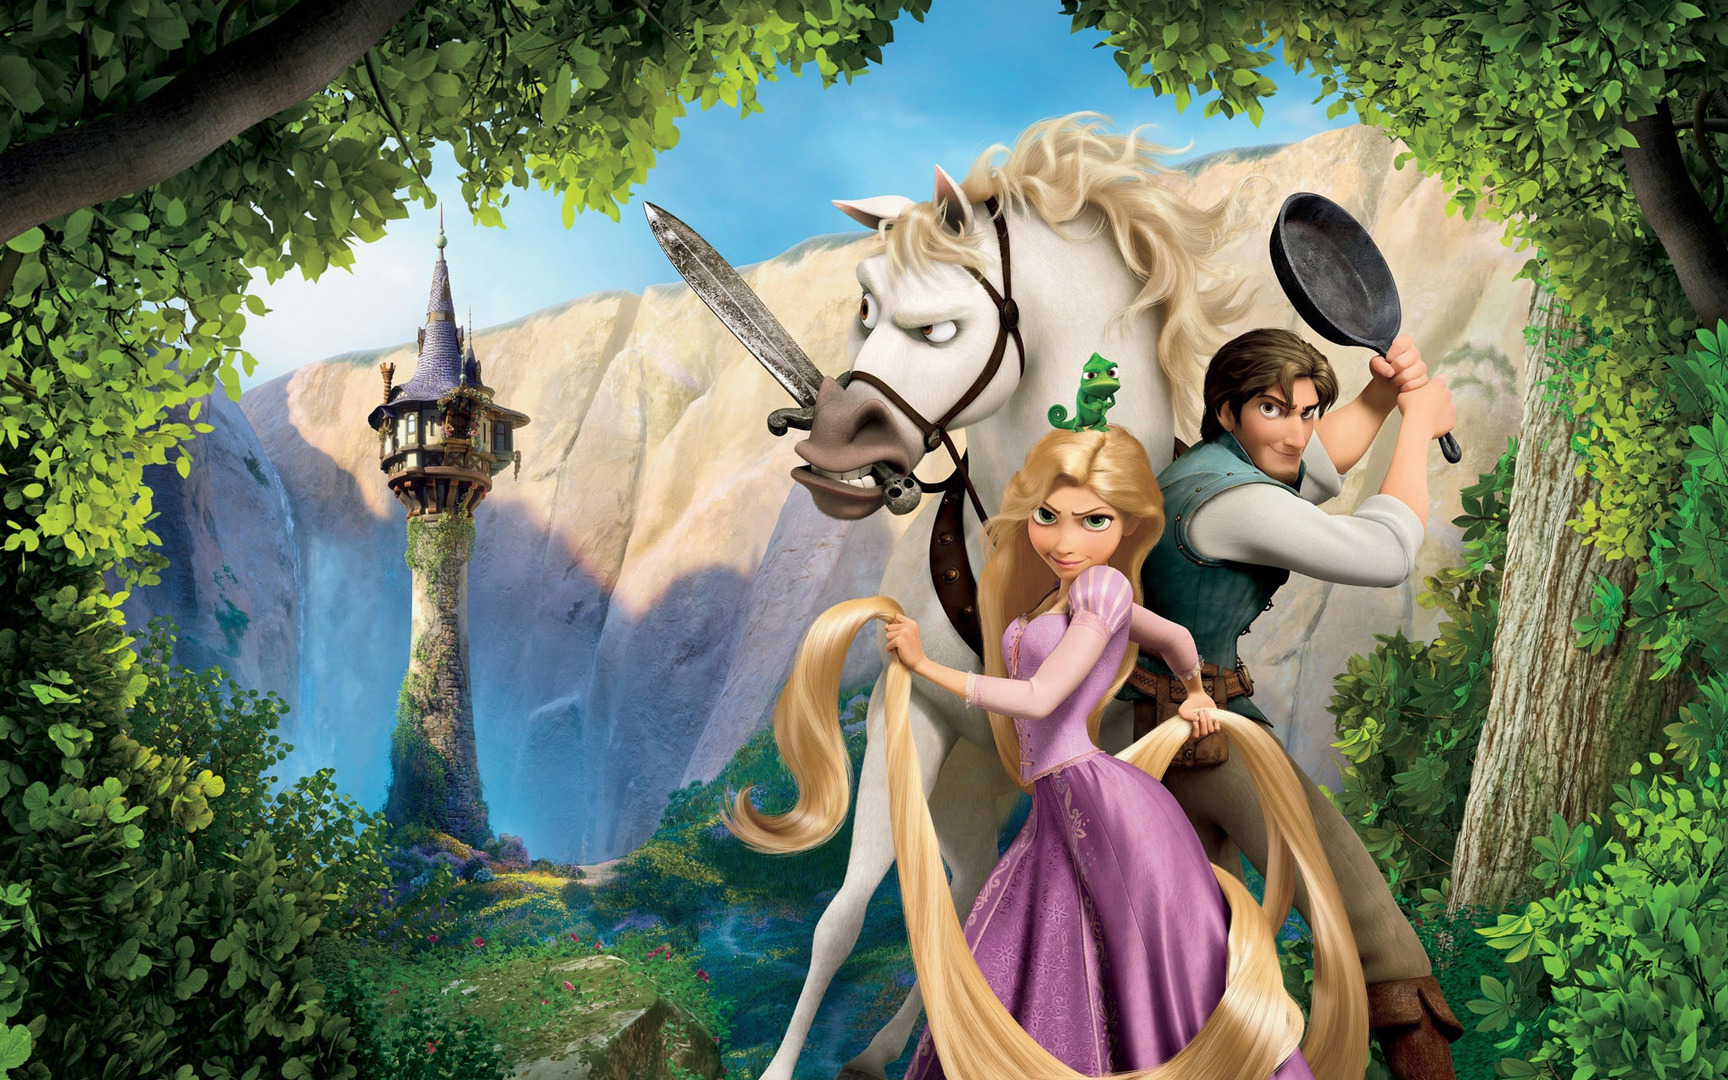 Tangled wallpaper 18619 1728x1080